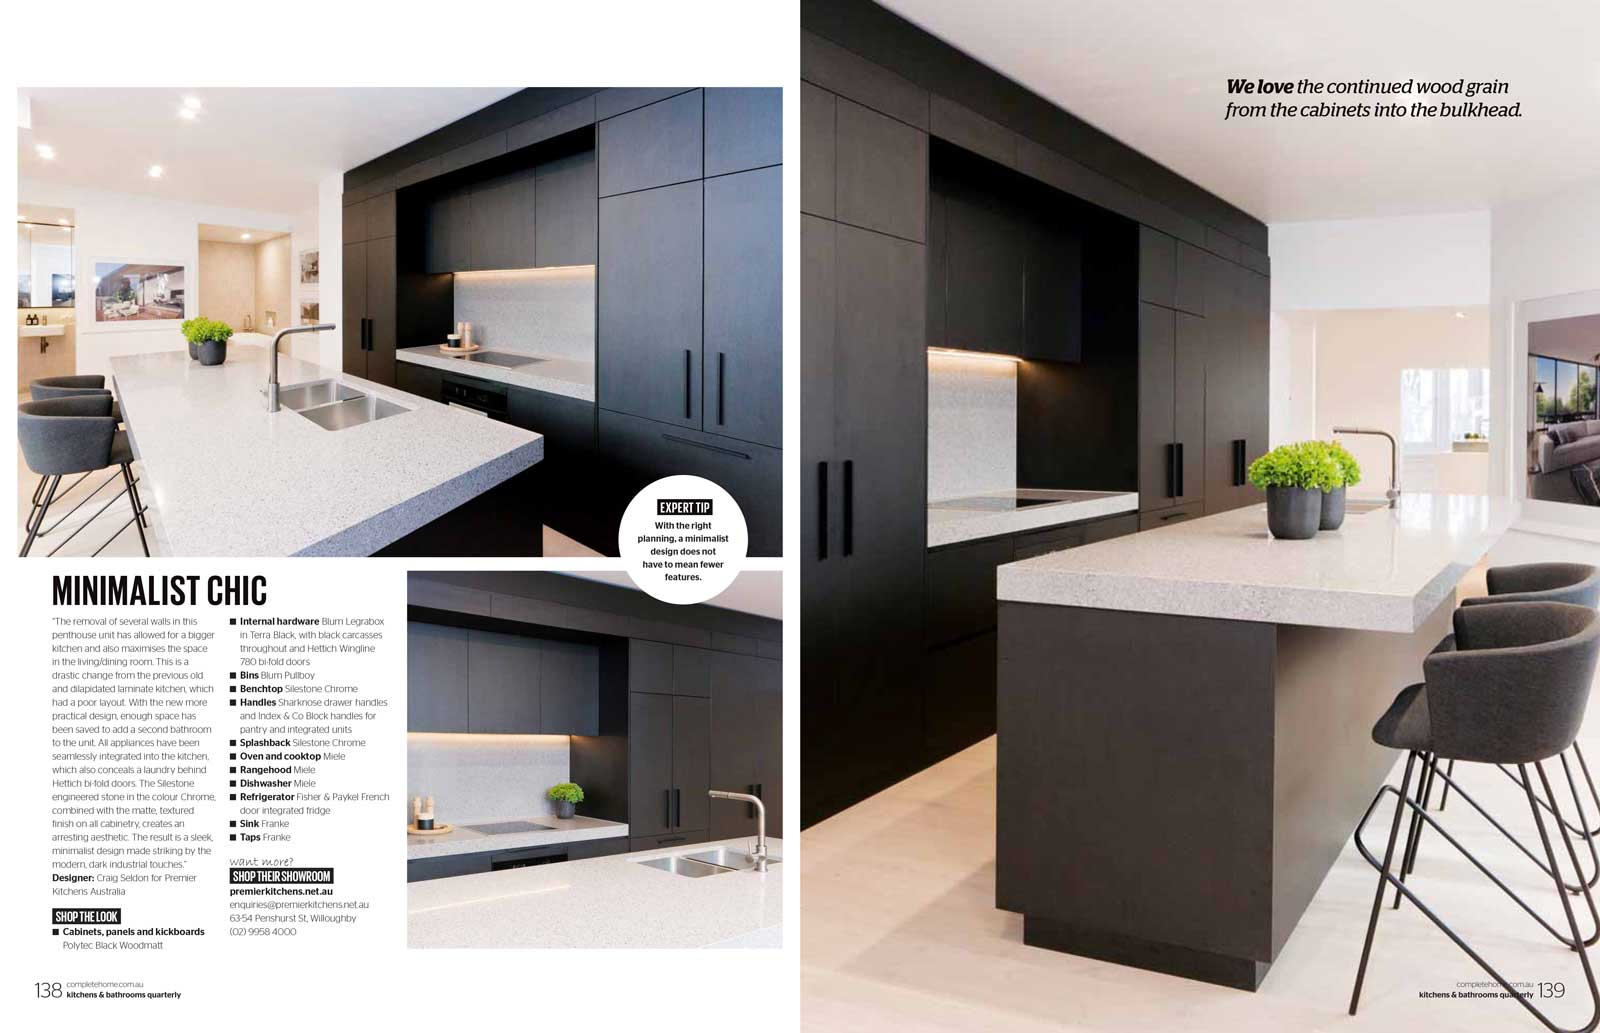 kitchens and bathrooms quarterly magazine article featuring Premier Kitchens Australia Bondi kitchen design